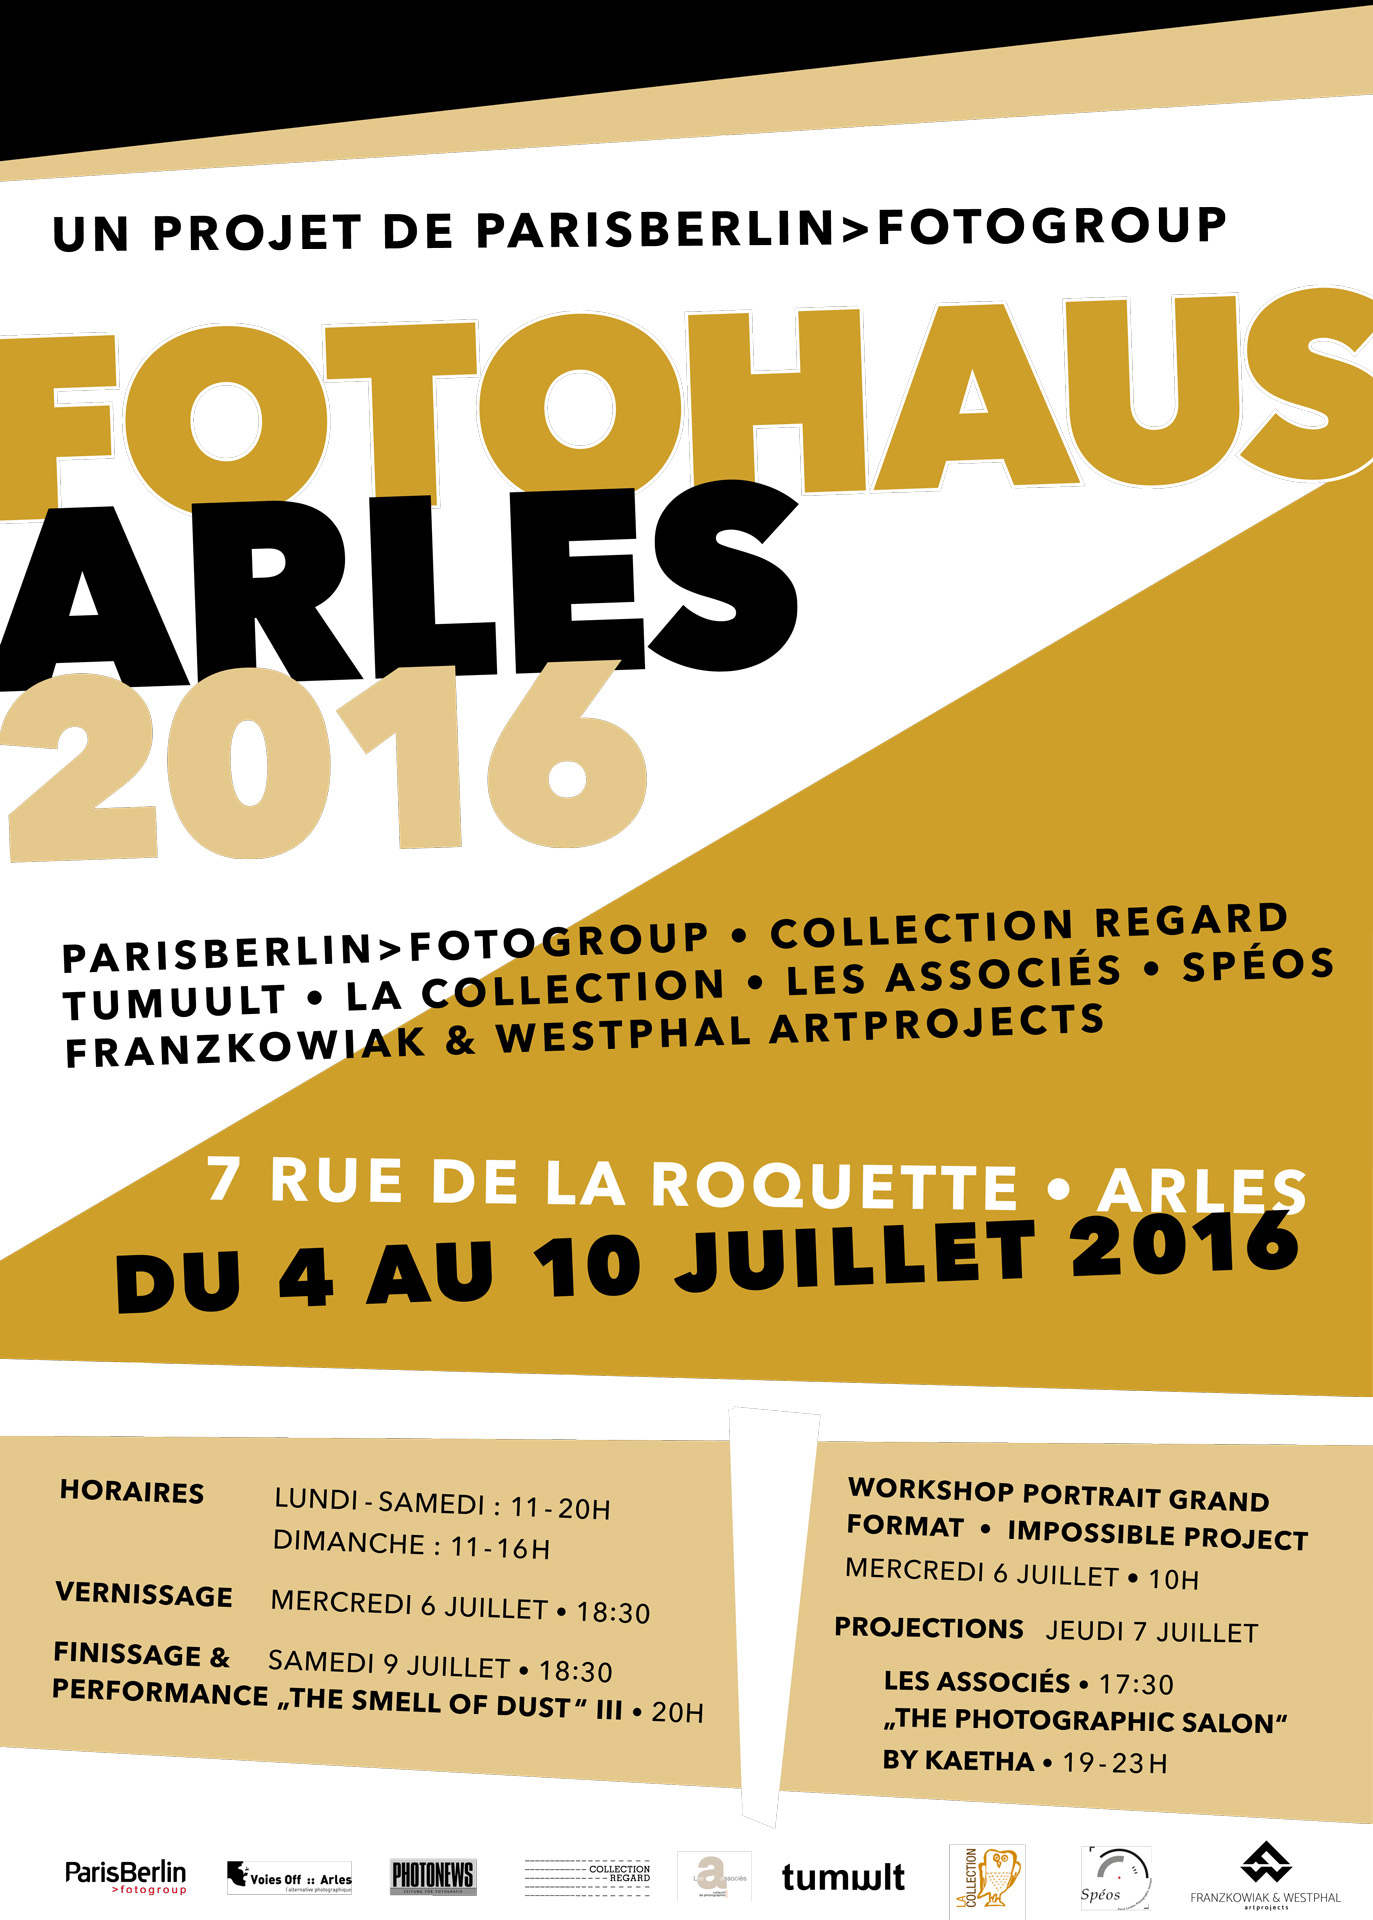 affiches arles 2016